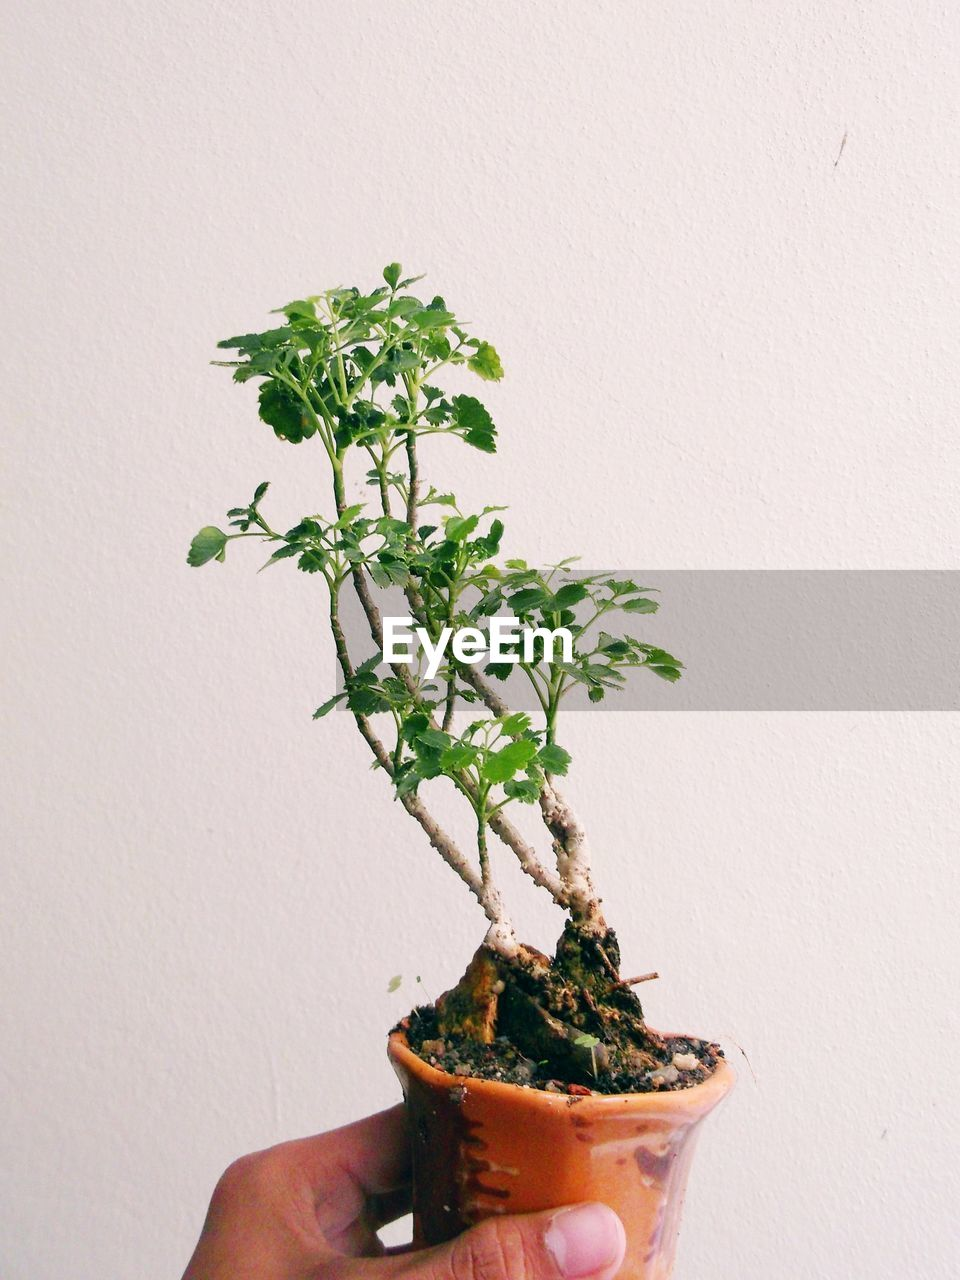 human hand, hand, human body part, plant, wall - building feature, potted plant, holding, growth, plant part, one person, leaf, real people, nature, indoors, green color, freshness, close-up, body part, unrecognizable person, finger, flower pot, small, gardening